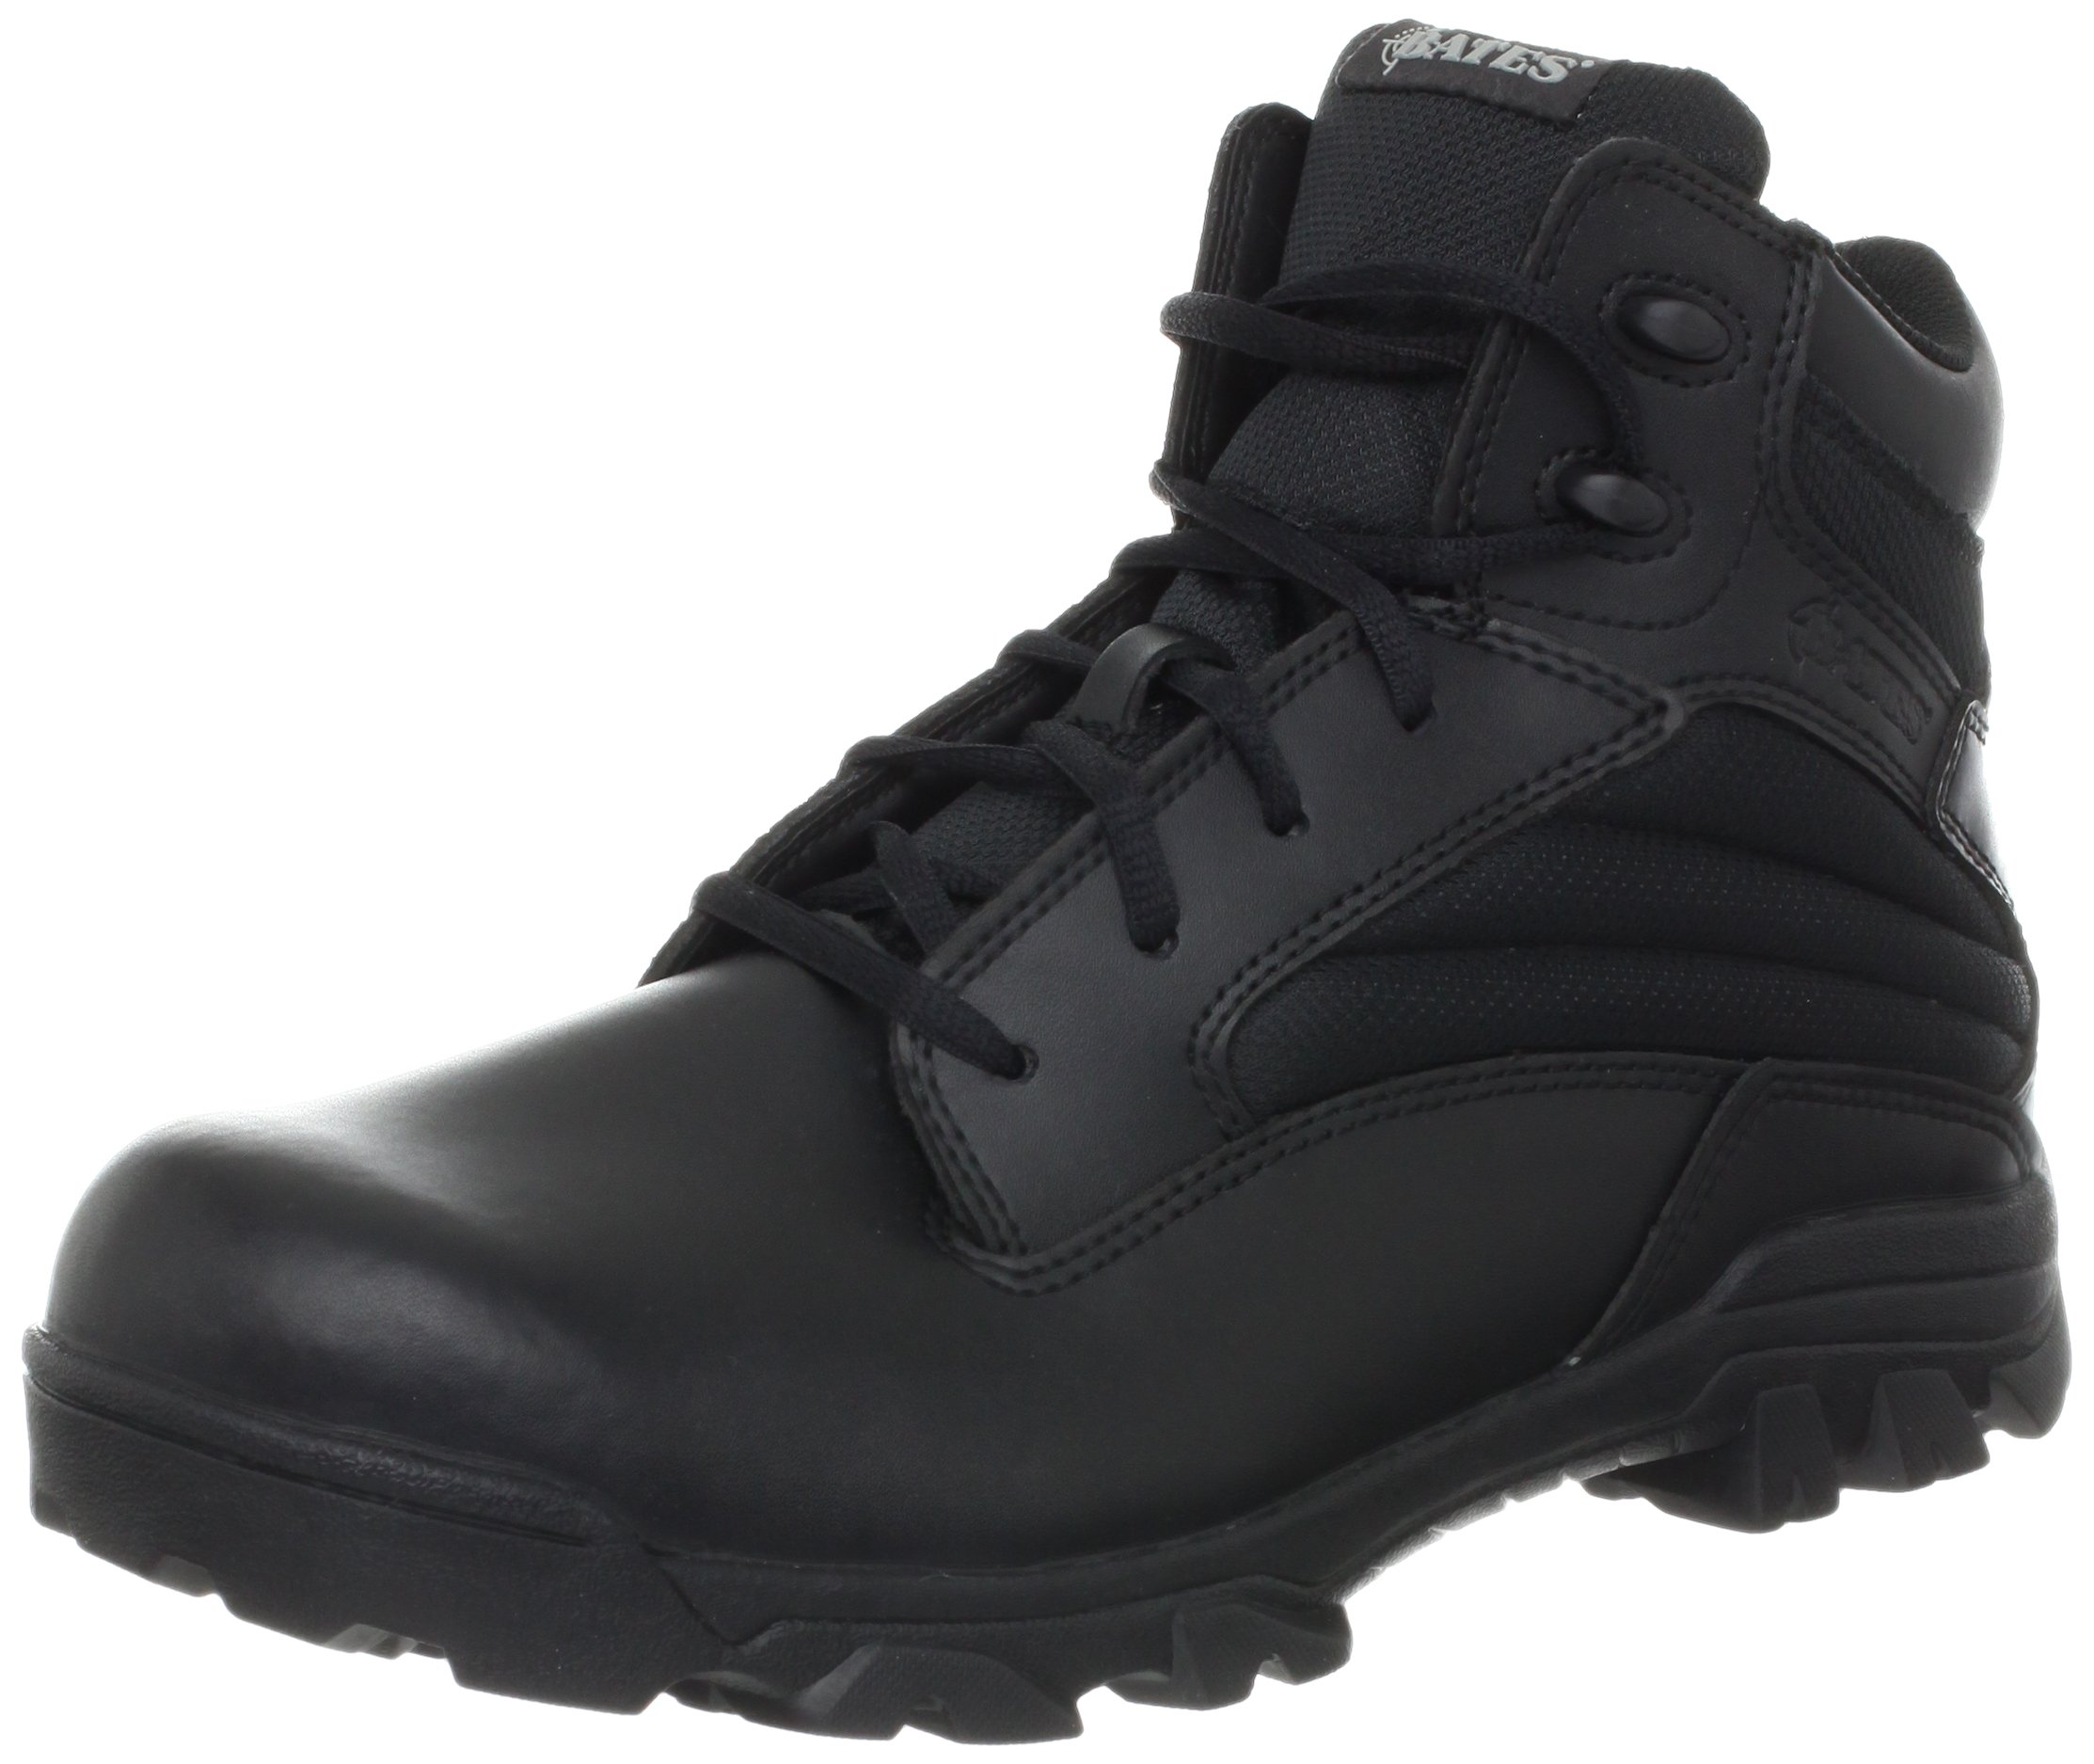 Nylon Uniform Bates Leather Boot